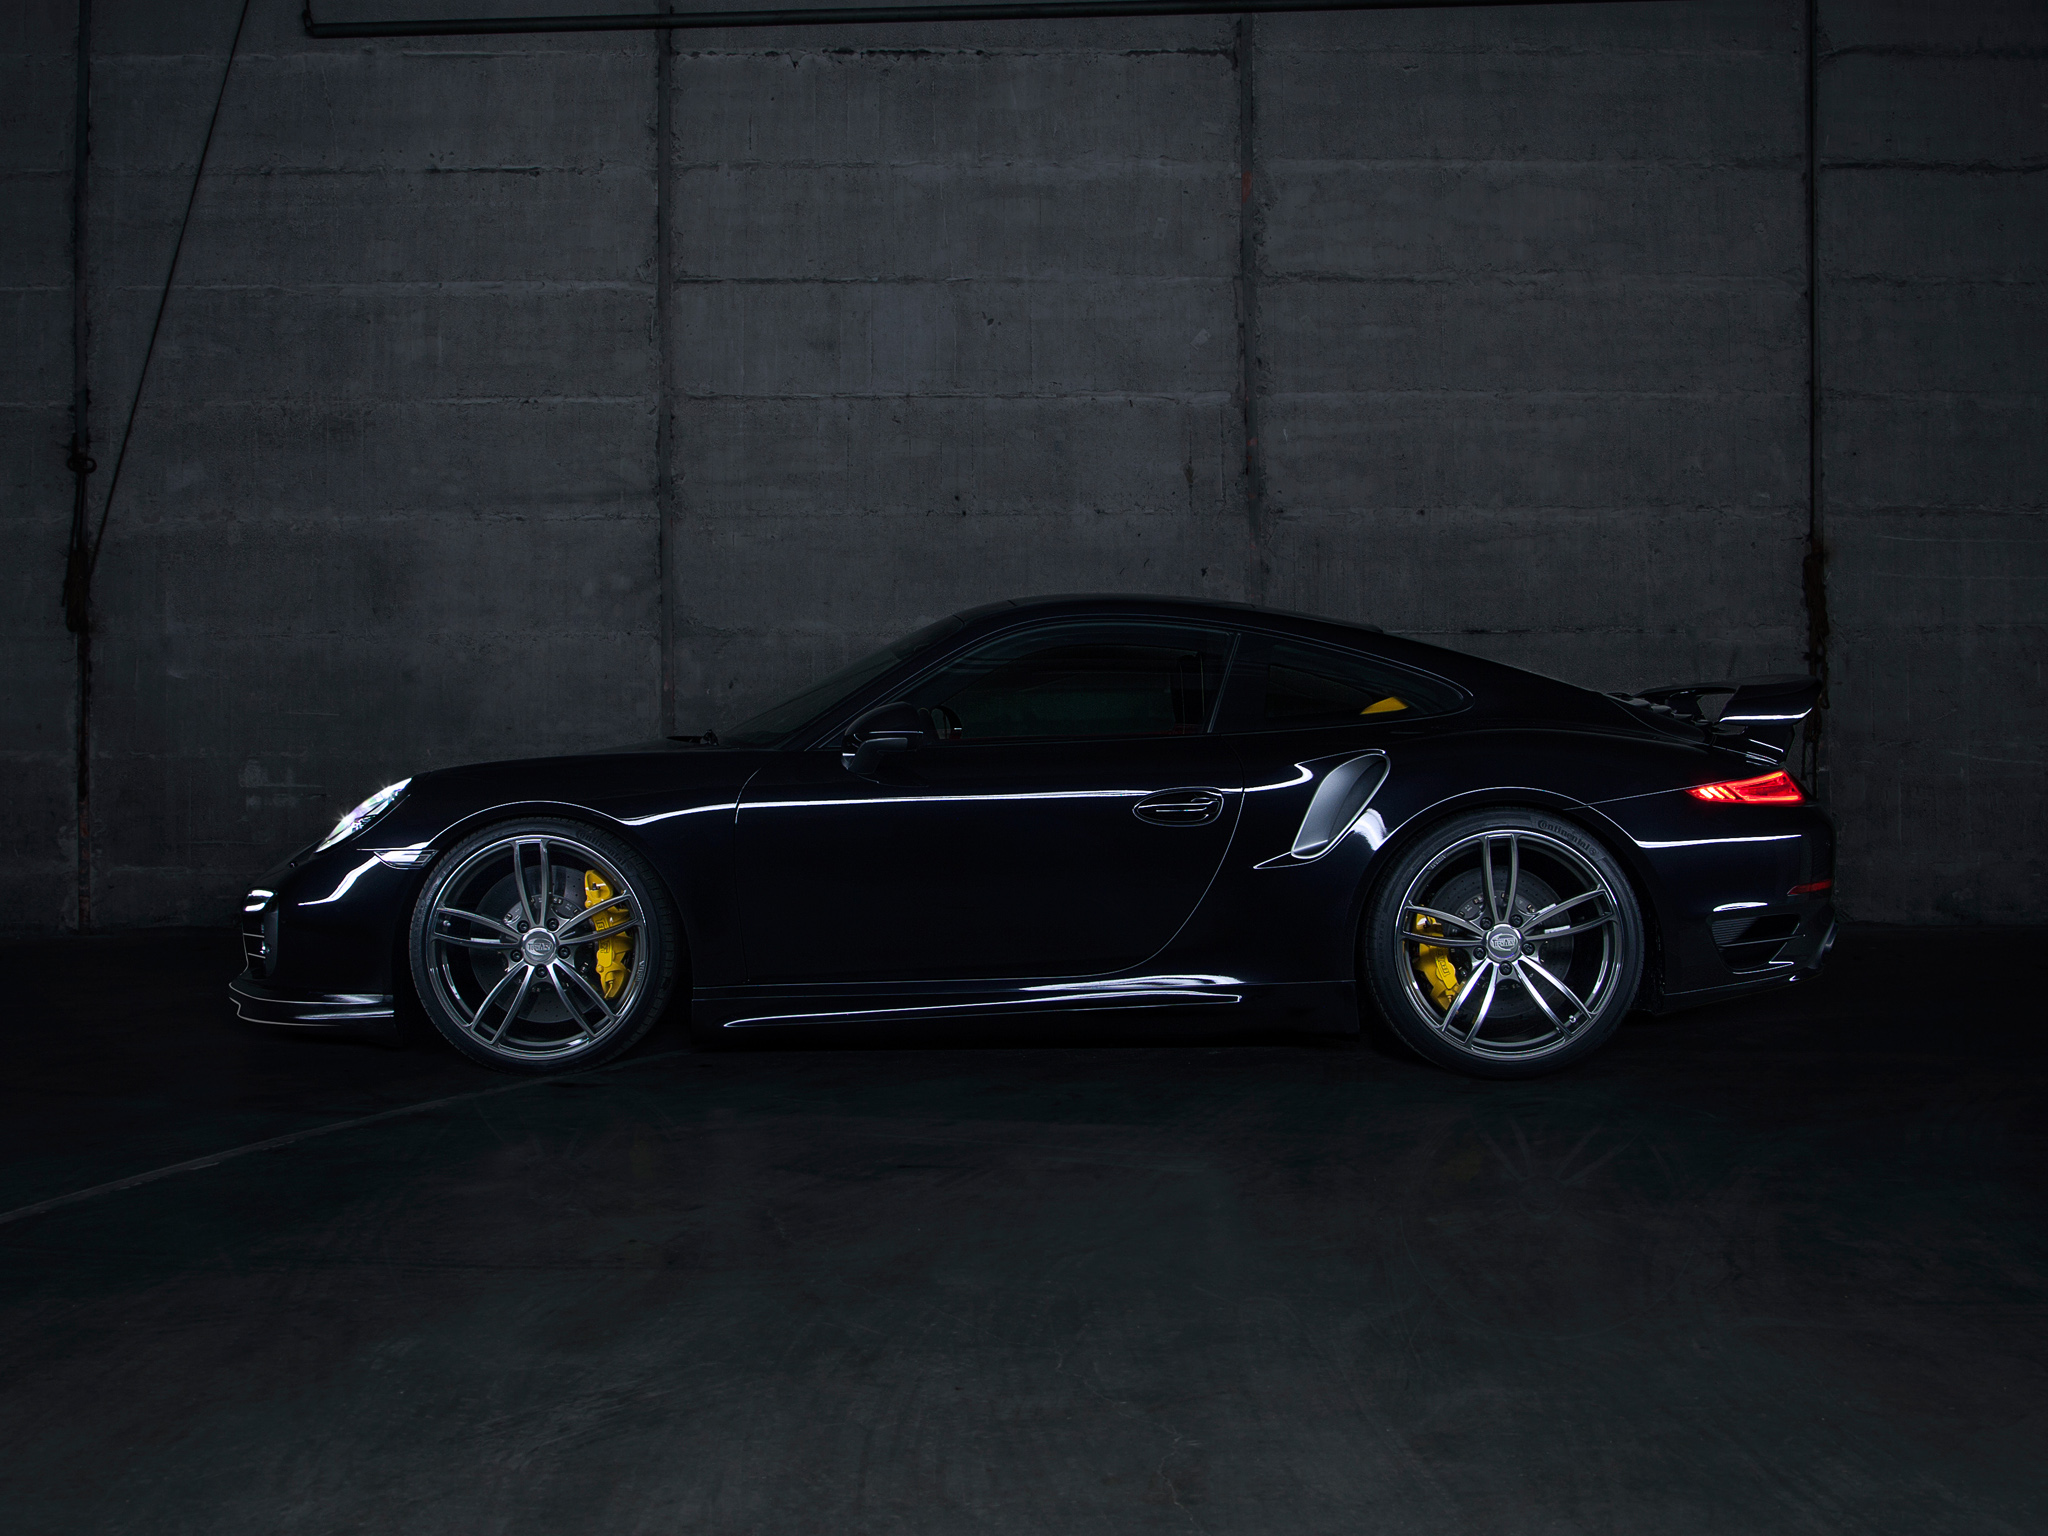 2013 TechArt Porsche 911 Turbo  991  interior f wallpaper backgroundPorsche 991 Turbo Interior